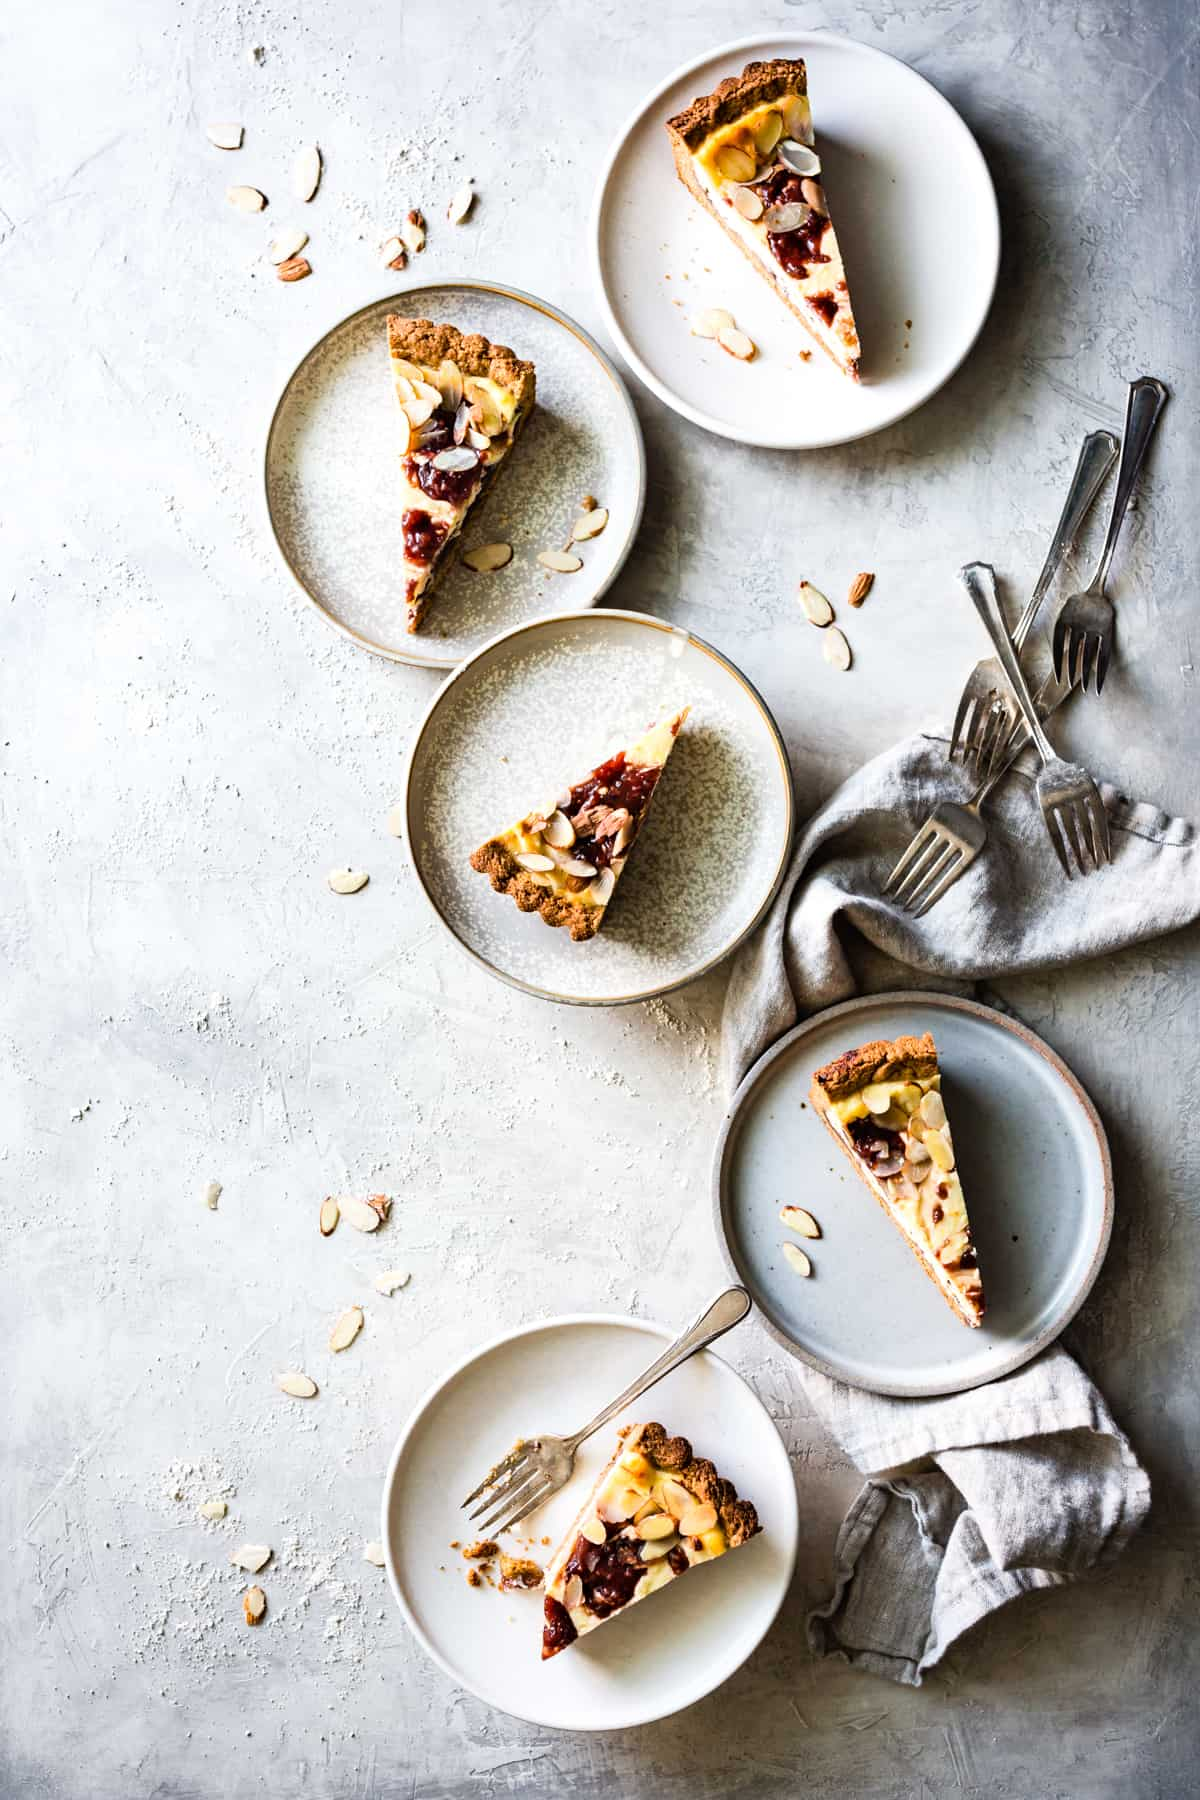 slices of Almond Crostata With Ricotta & Jam {gluten-free}